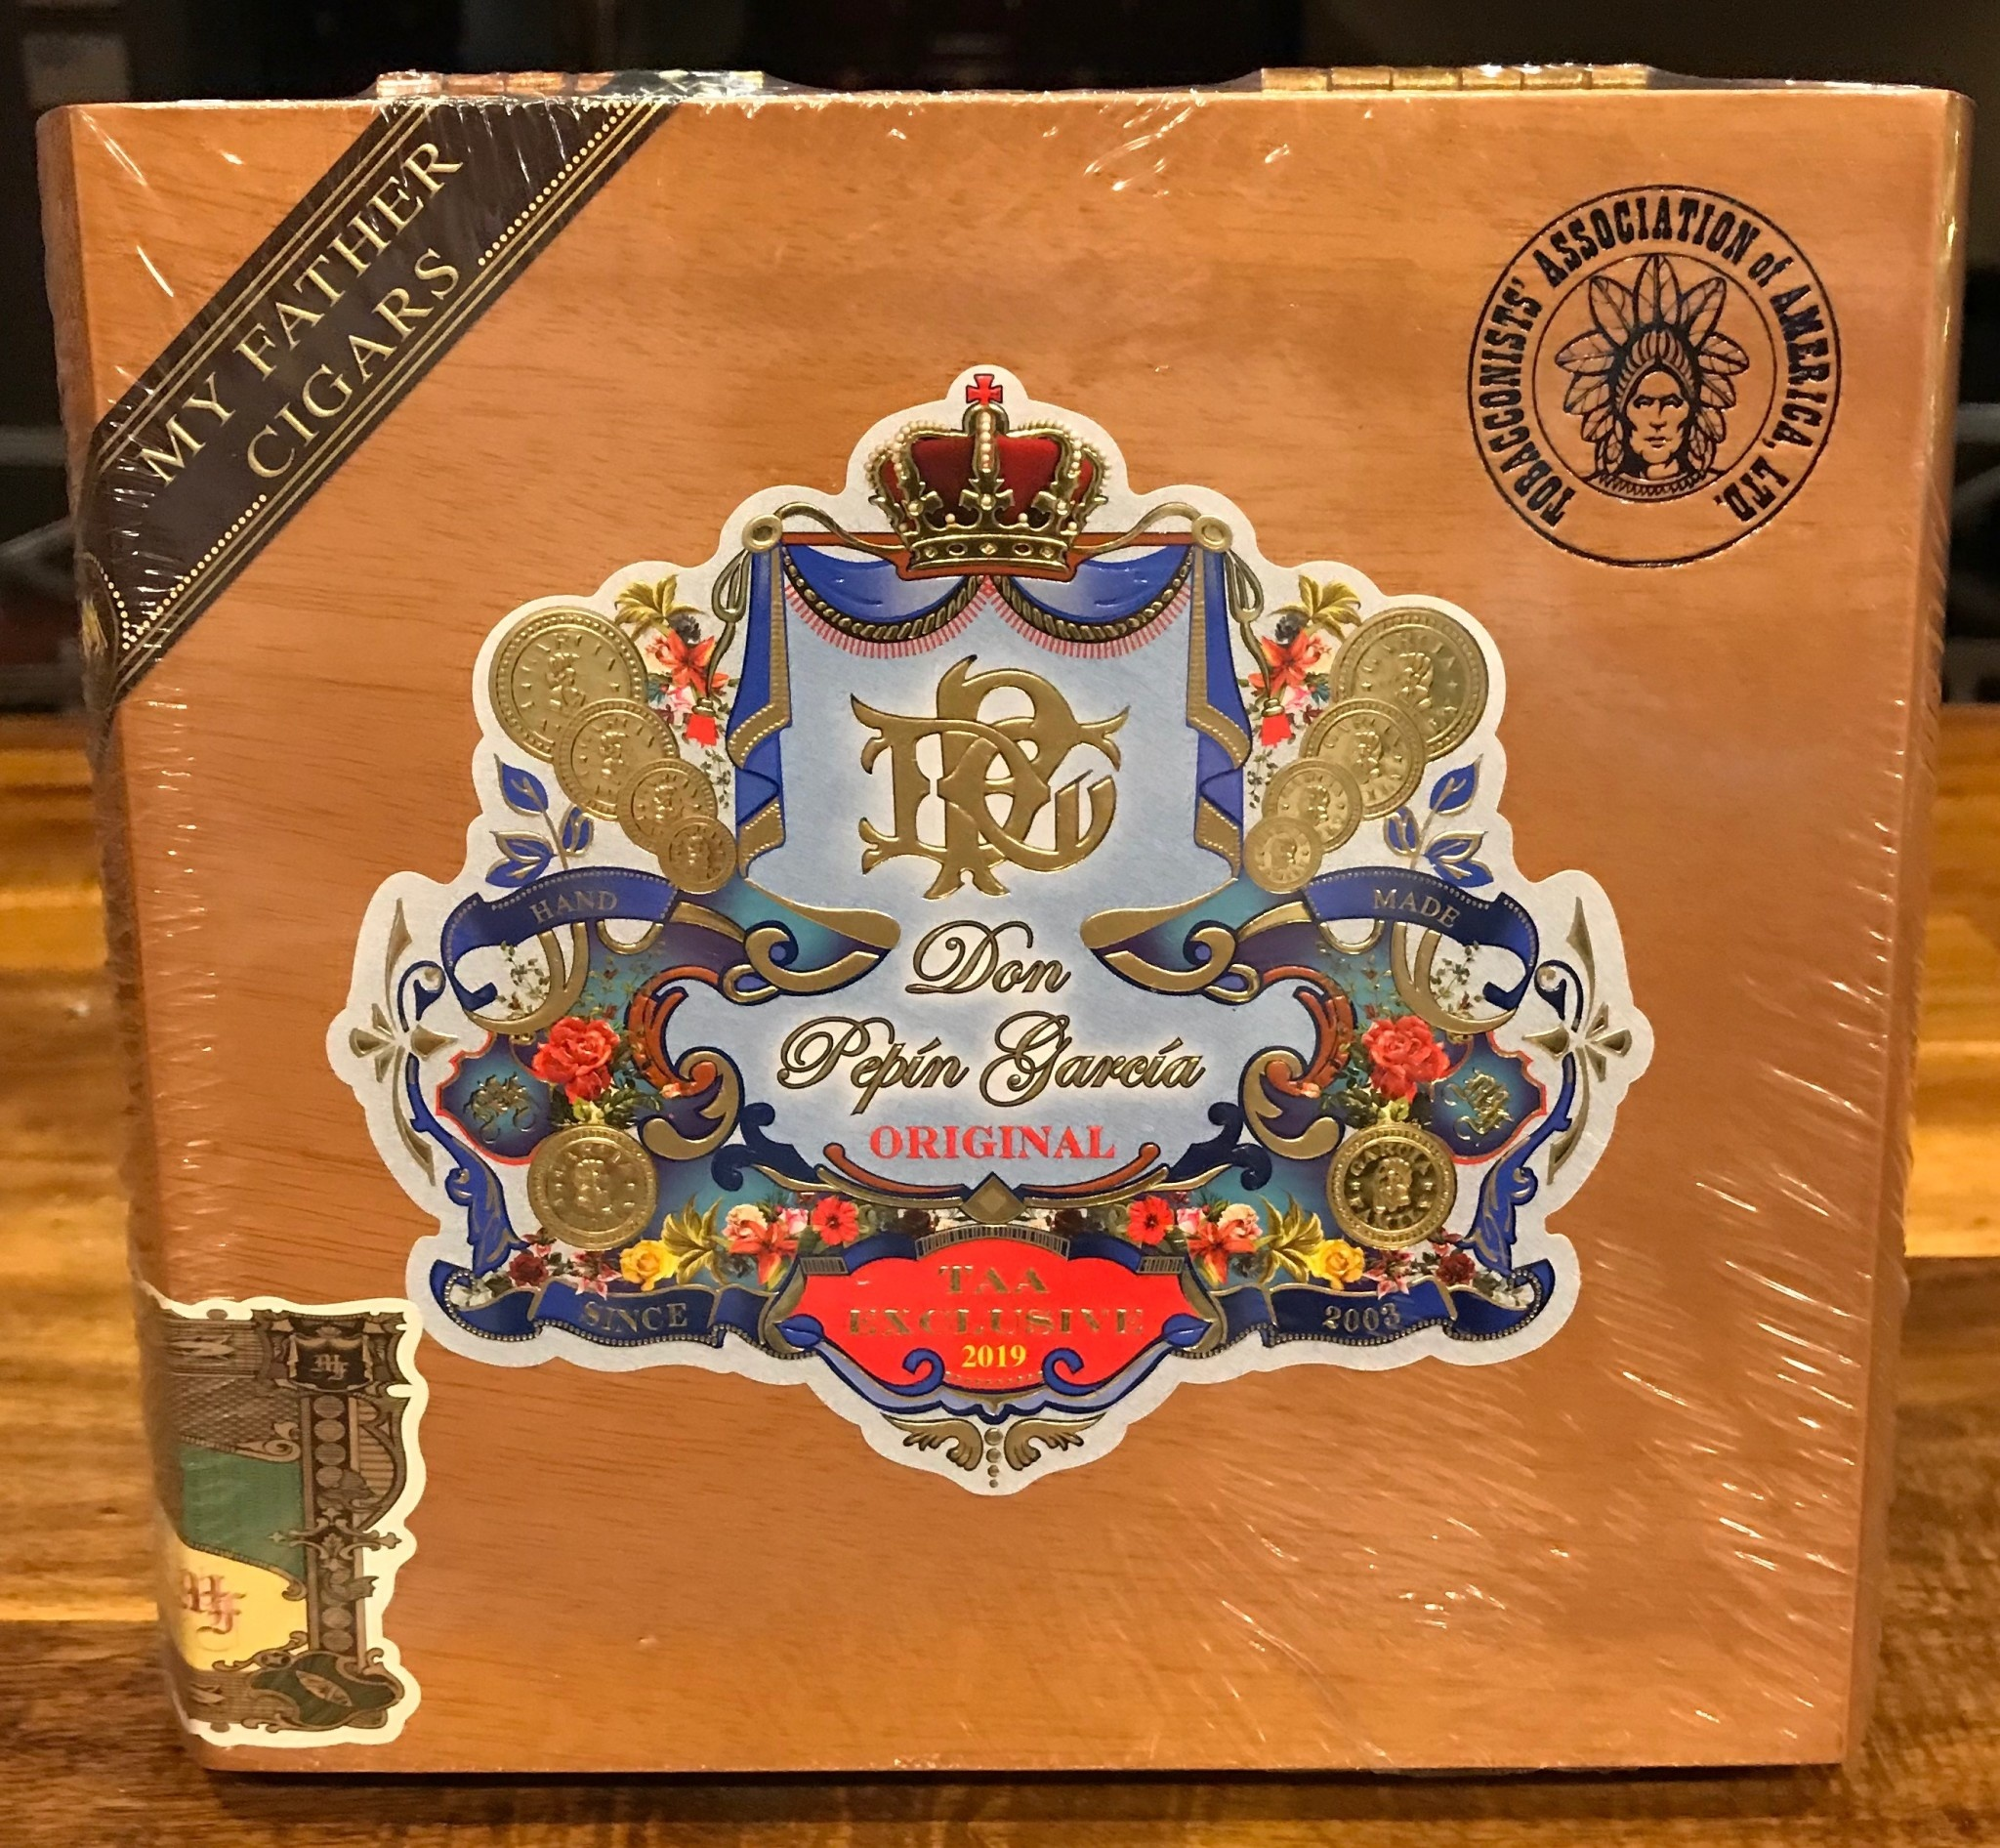 MY FATHER CIGAR CO. DON PEPIN GARCIA TAA 2019 TORO 6x54 single